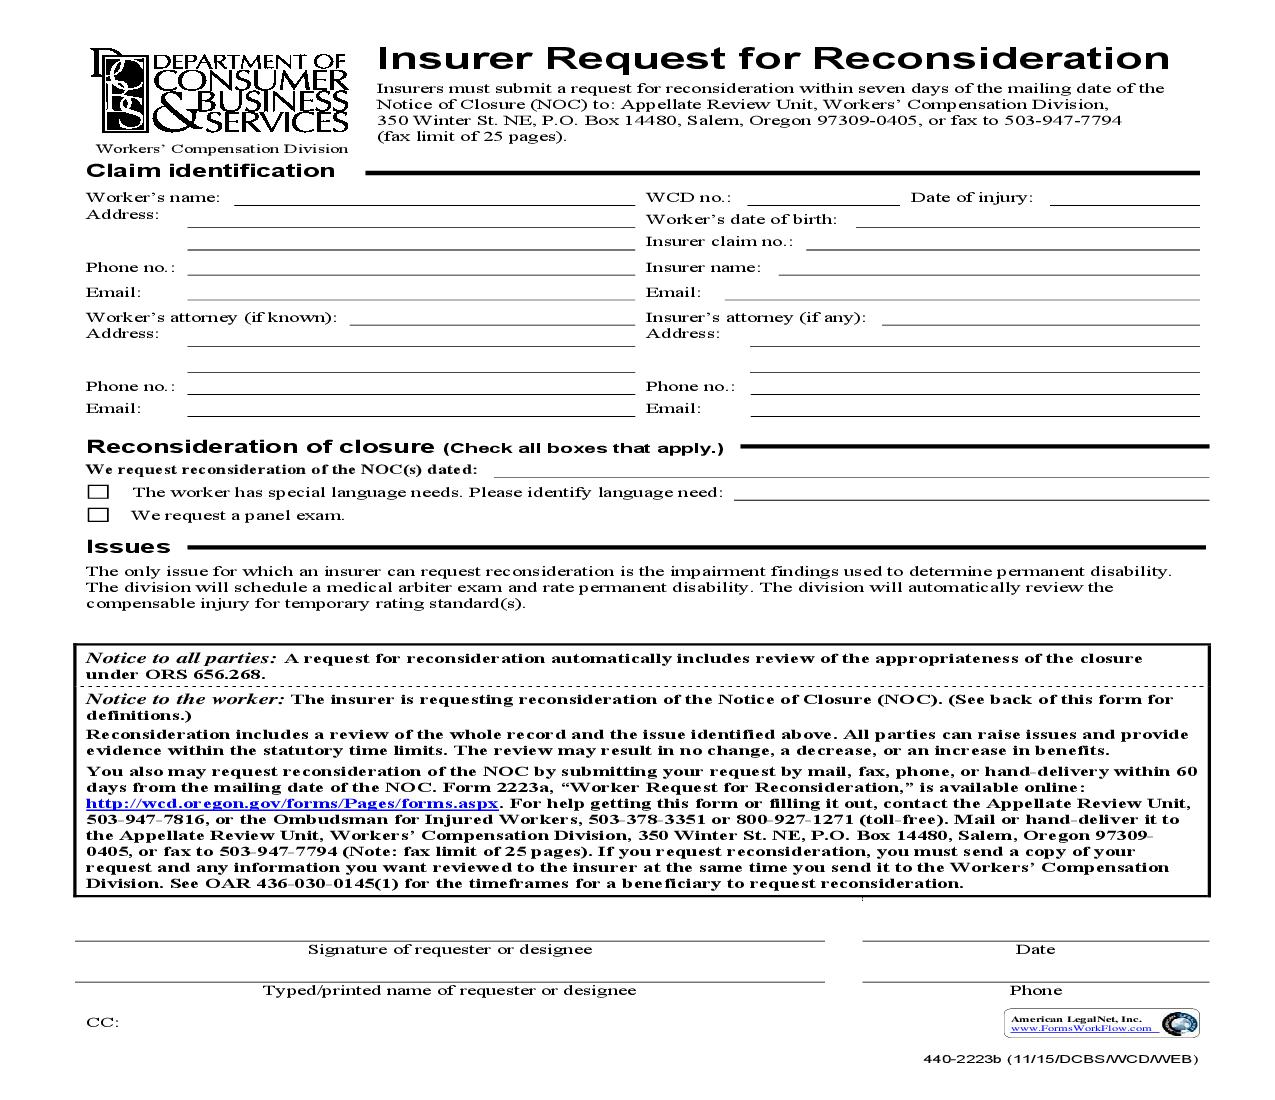 Insurer Request For Reconsideration {2223b} | Pdf Fpdf Doc Docx | Oregon